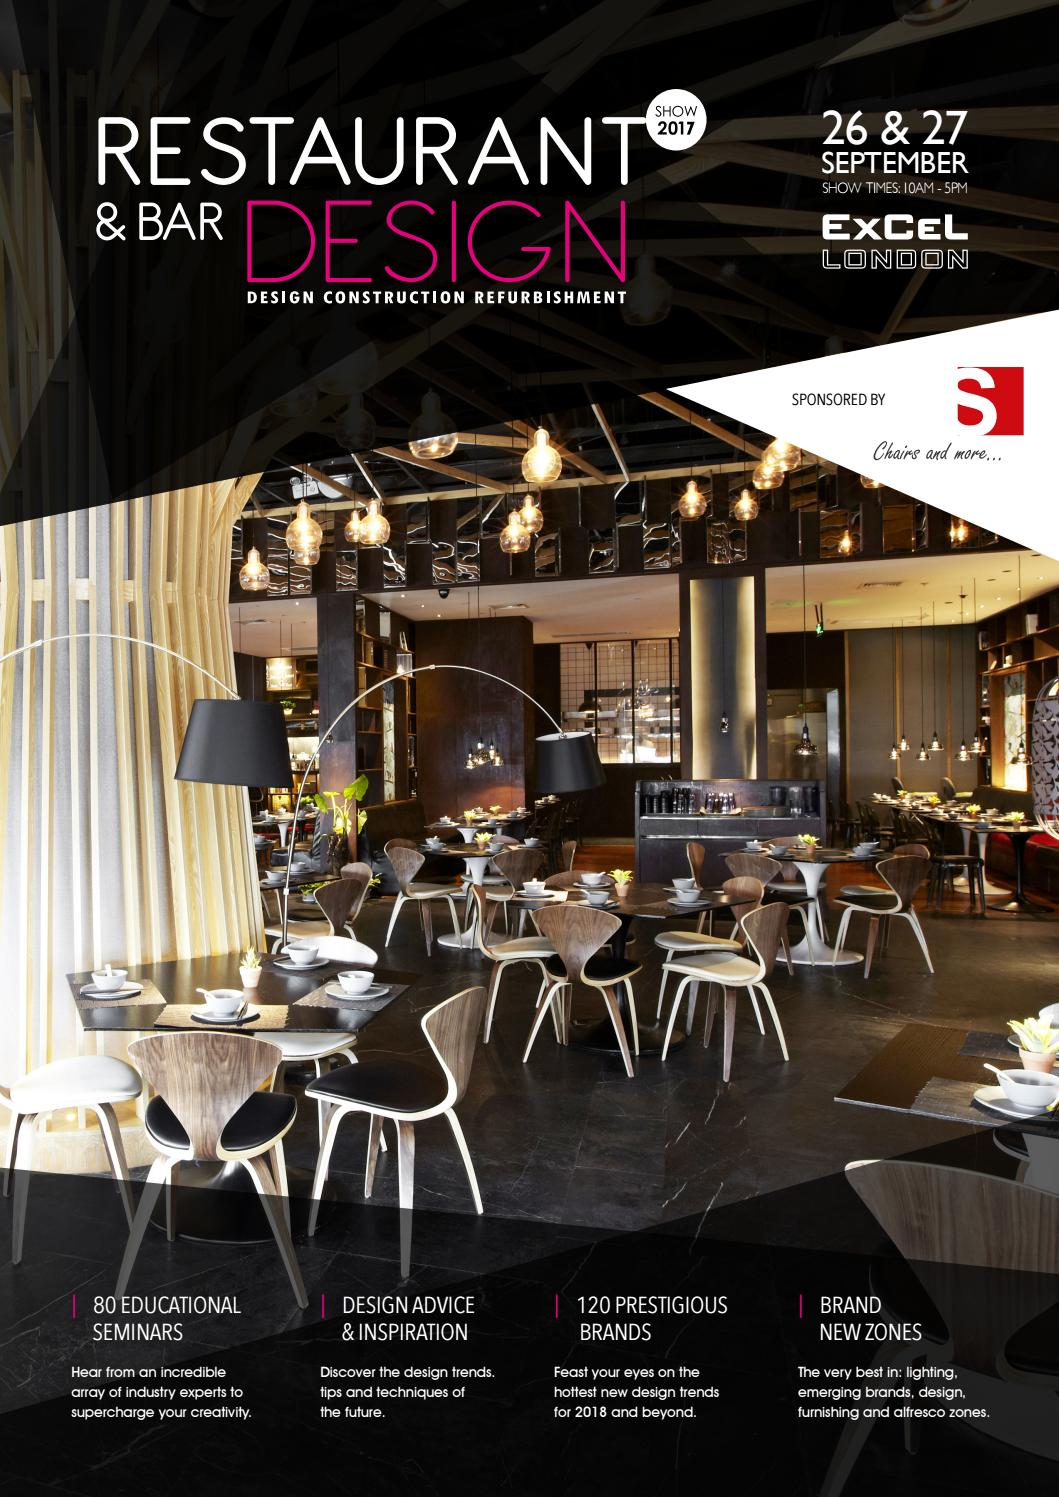 Restaurant And Bar Design 2017 Show Guide By Prysm Group Issuu